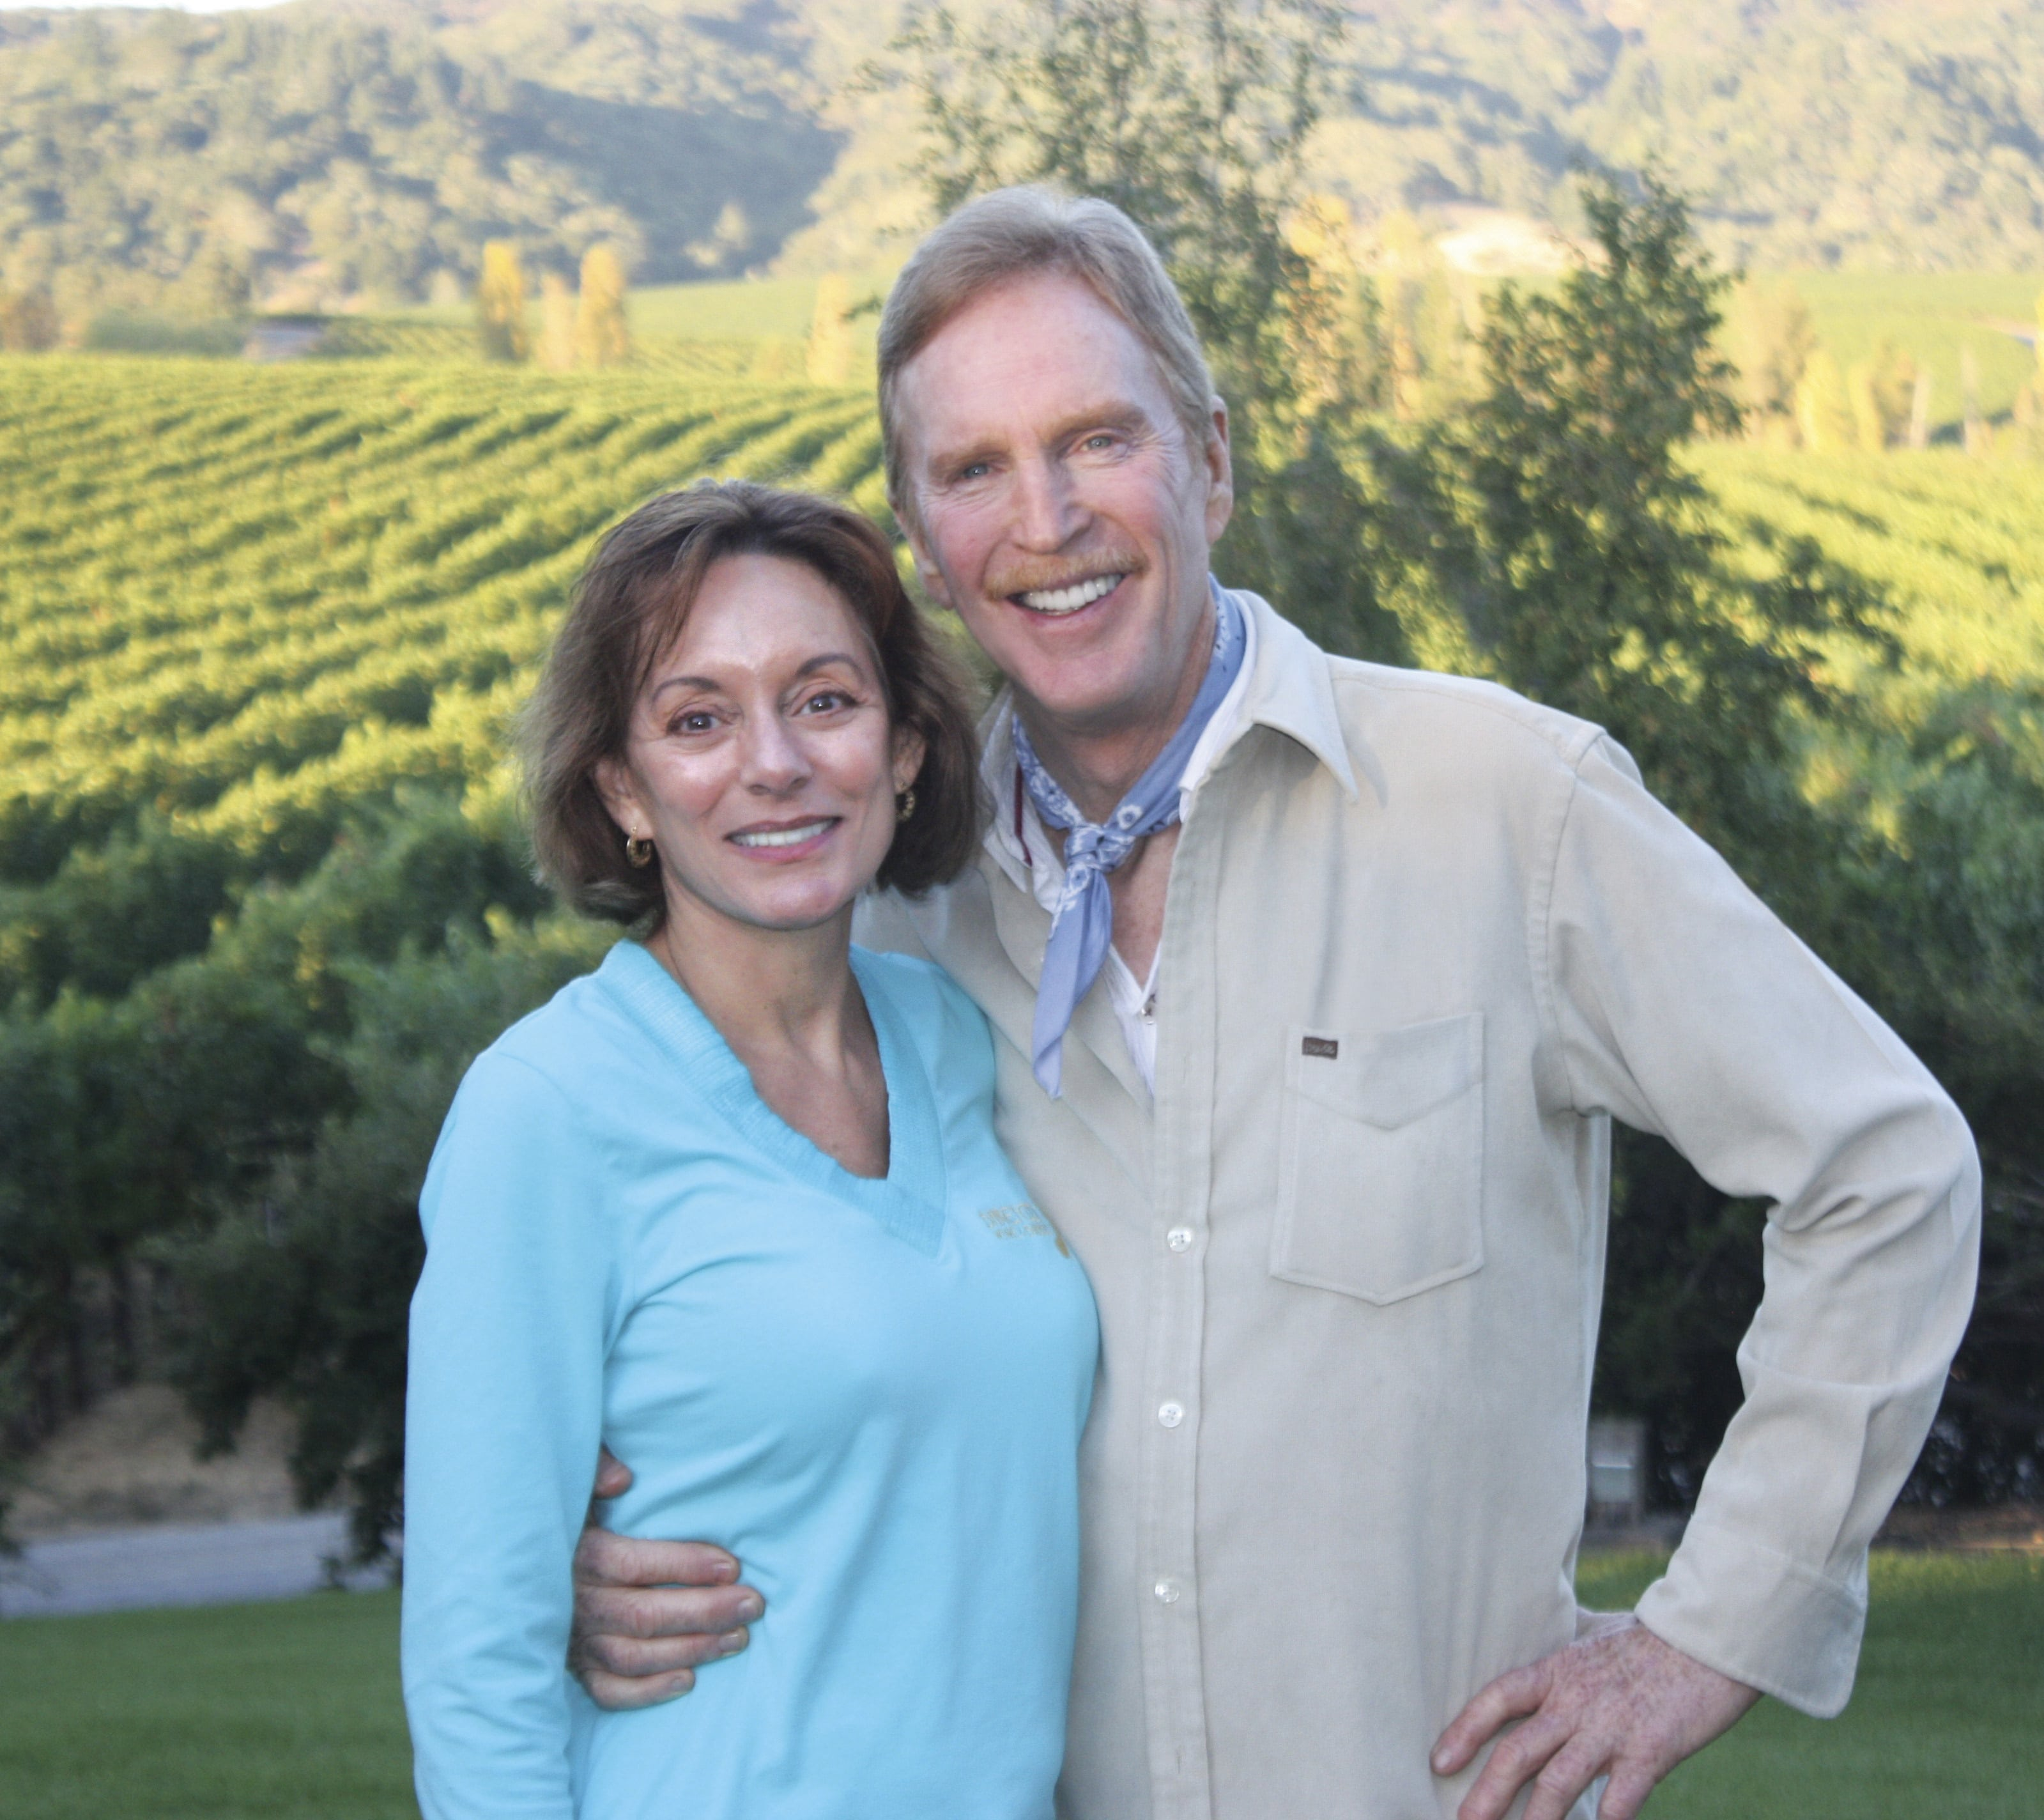 Michael & Bonnie - Vineyard